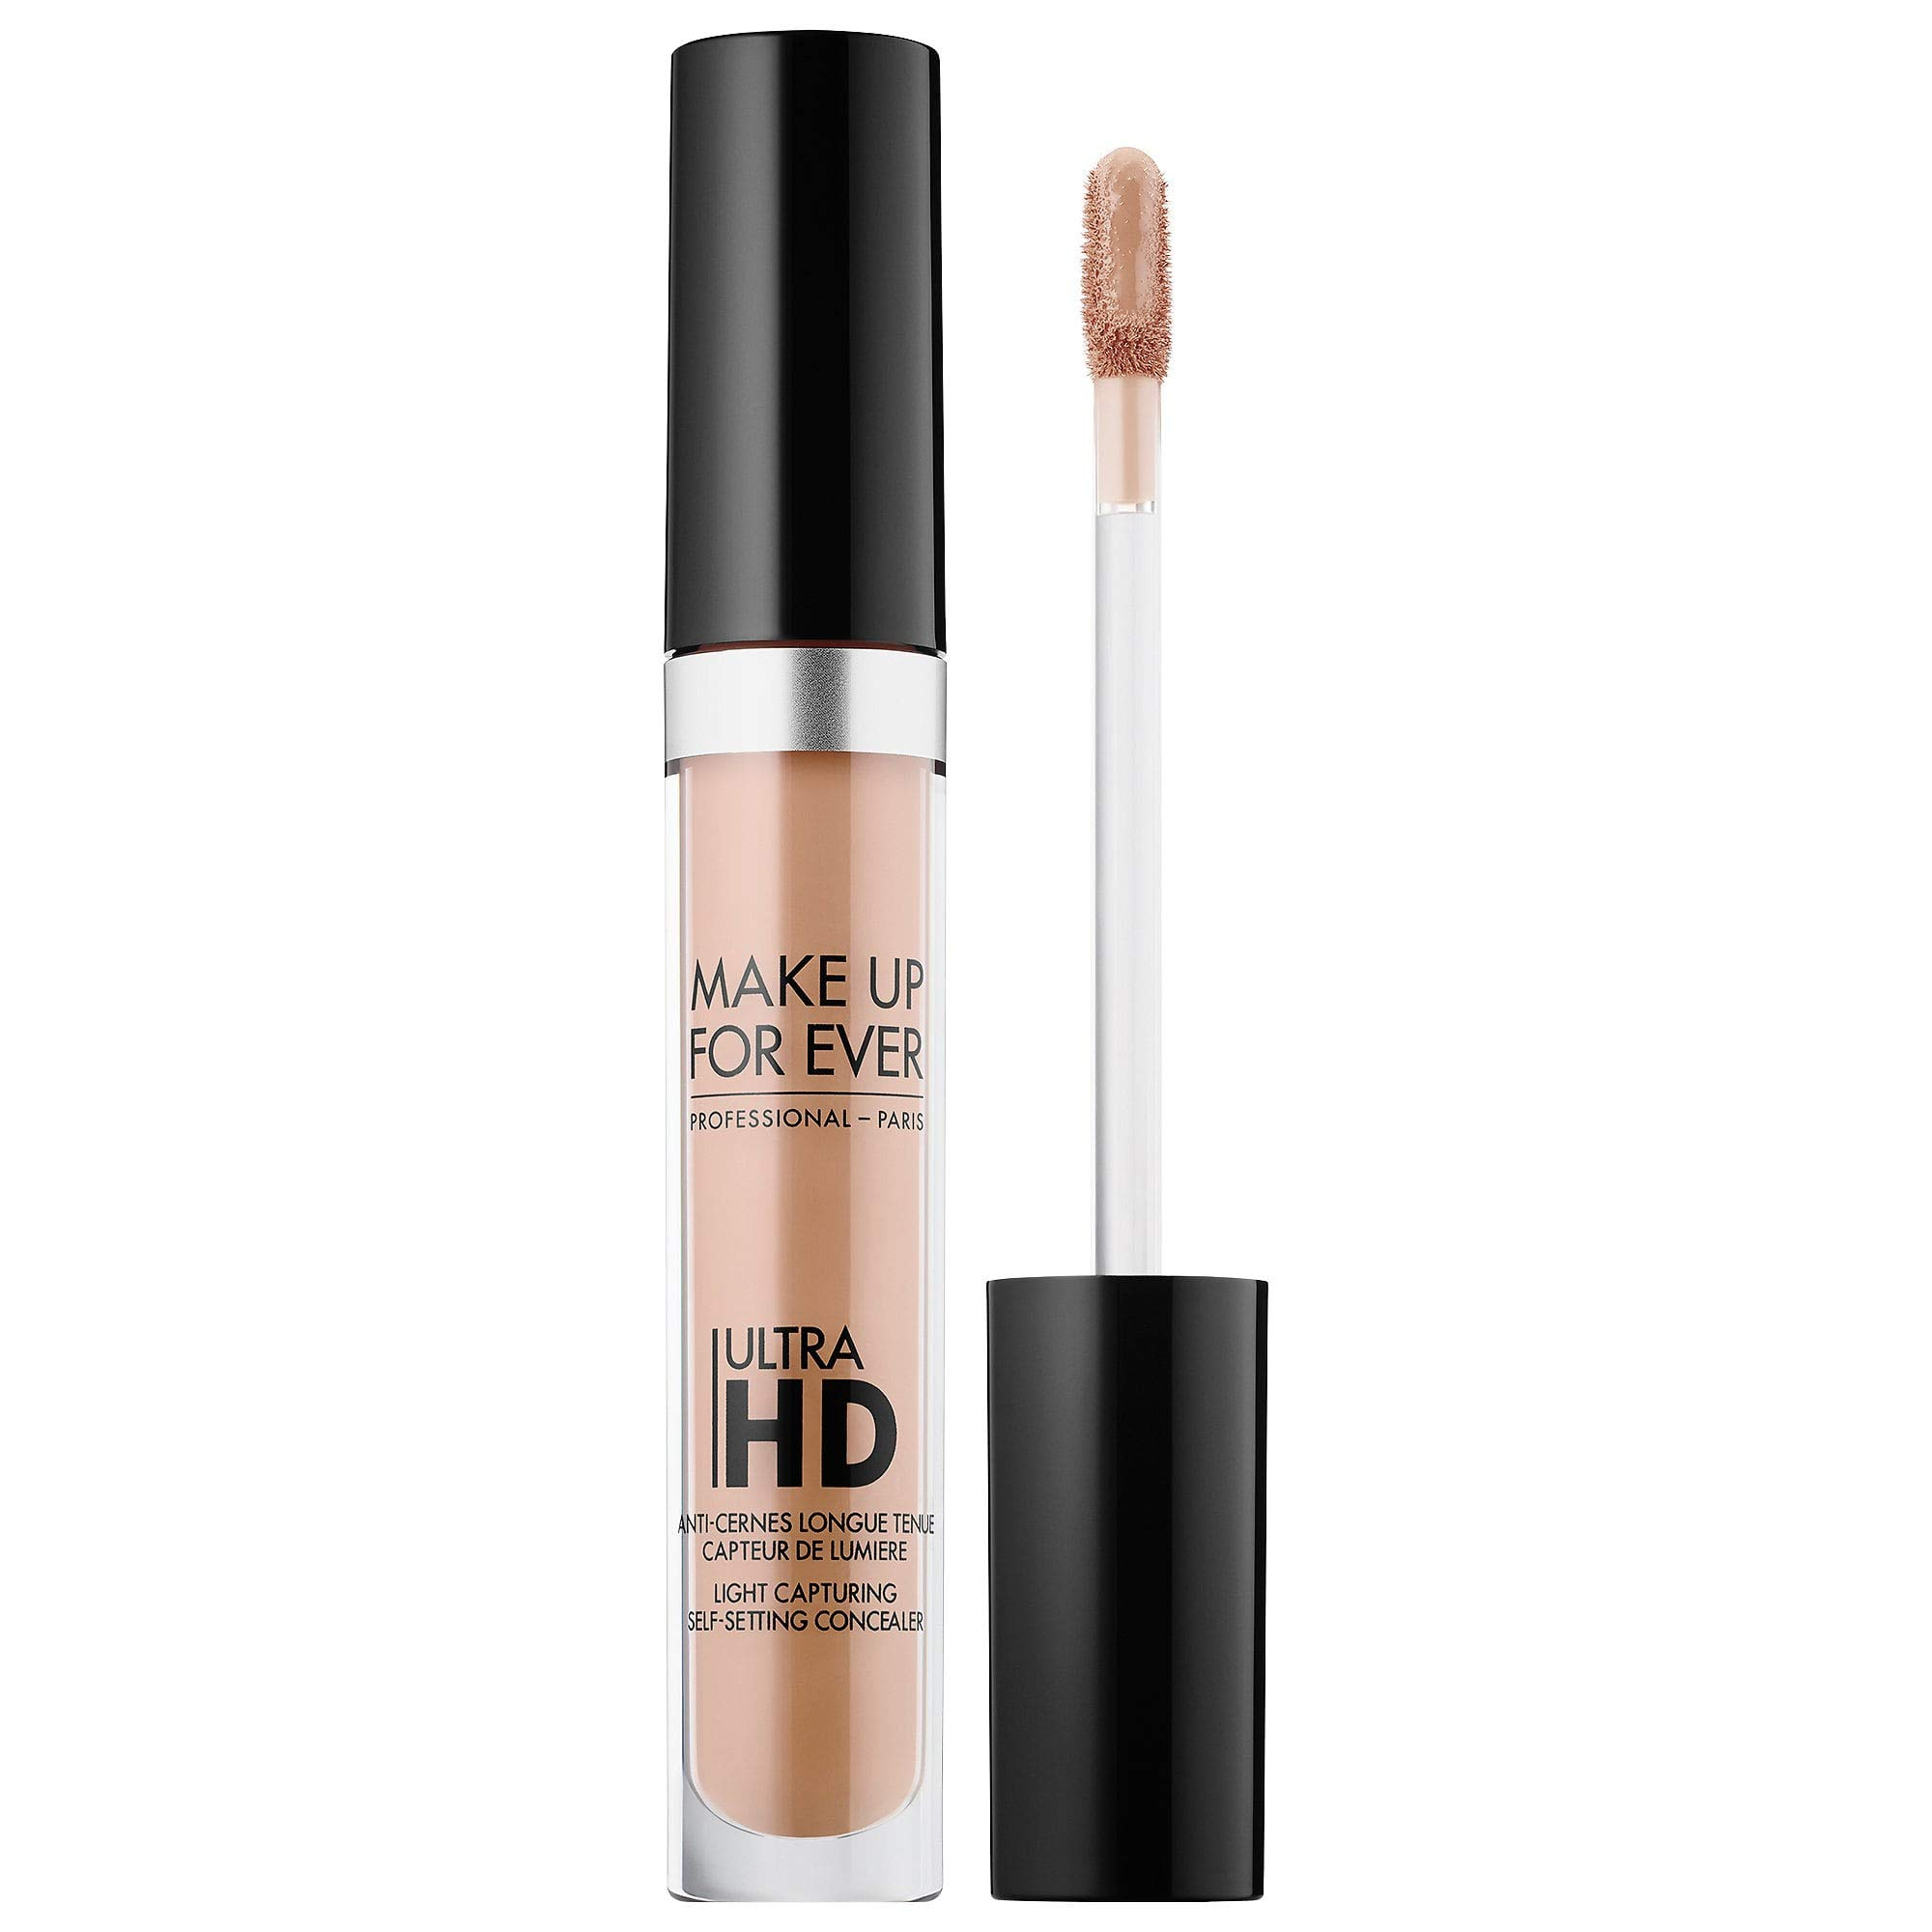 Make Up For Ever Ultra HD Self-Setting Concealer - Neutral Beige 32 by MUFE